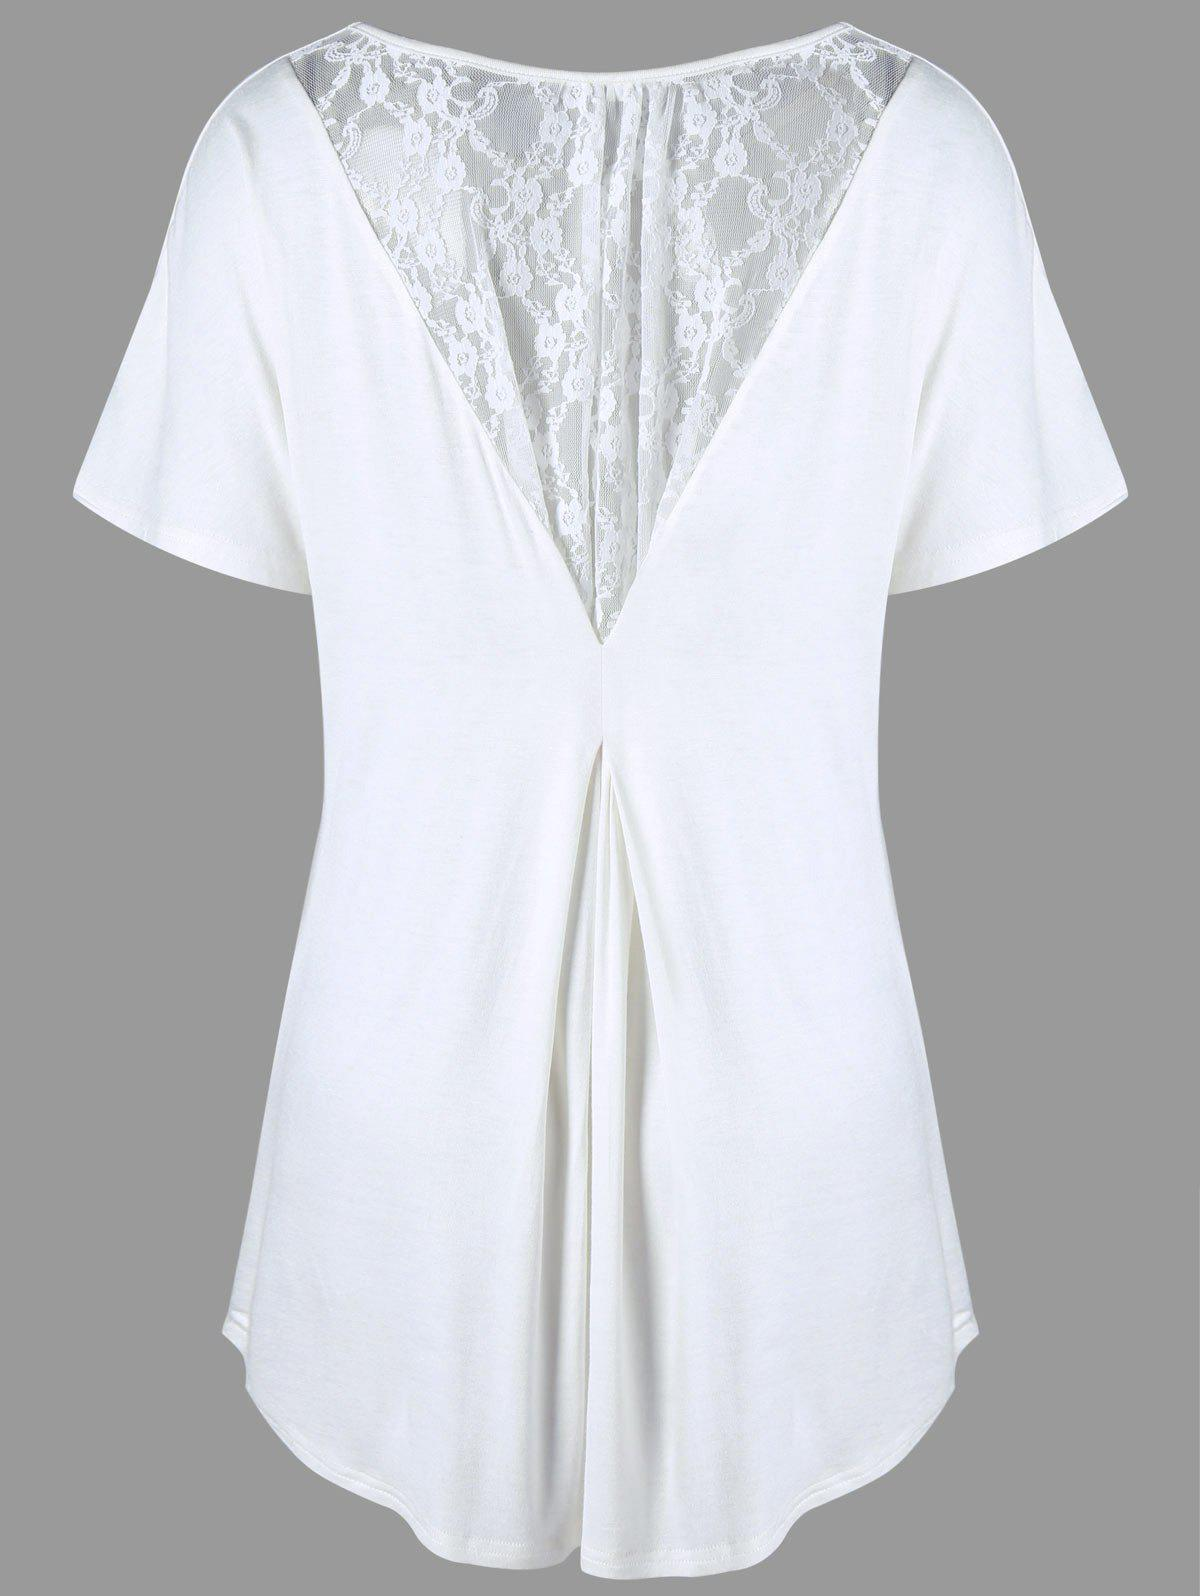 Plus Size Lace Insert High Low TeeWOMEN<br><br>Size: 5XL; Color: WHITE; Material: Rayon,Spandex; Shirt Length: Long; Sleeve Length: Short; Collar: Round Neck; Style: Casual; Season: Summer; Embellishment: Lace; Pattern Type: Solid; Weight: 0.2350kg; Package Contents: 1 x T-shirt;